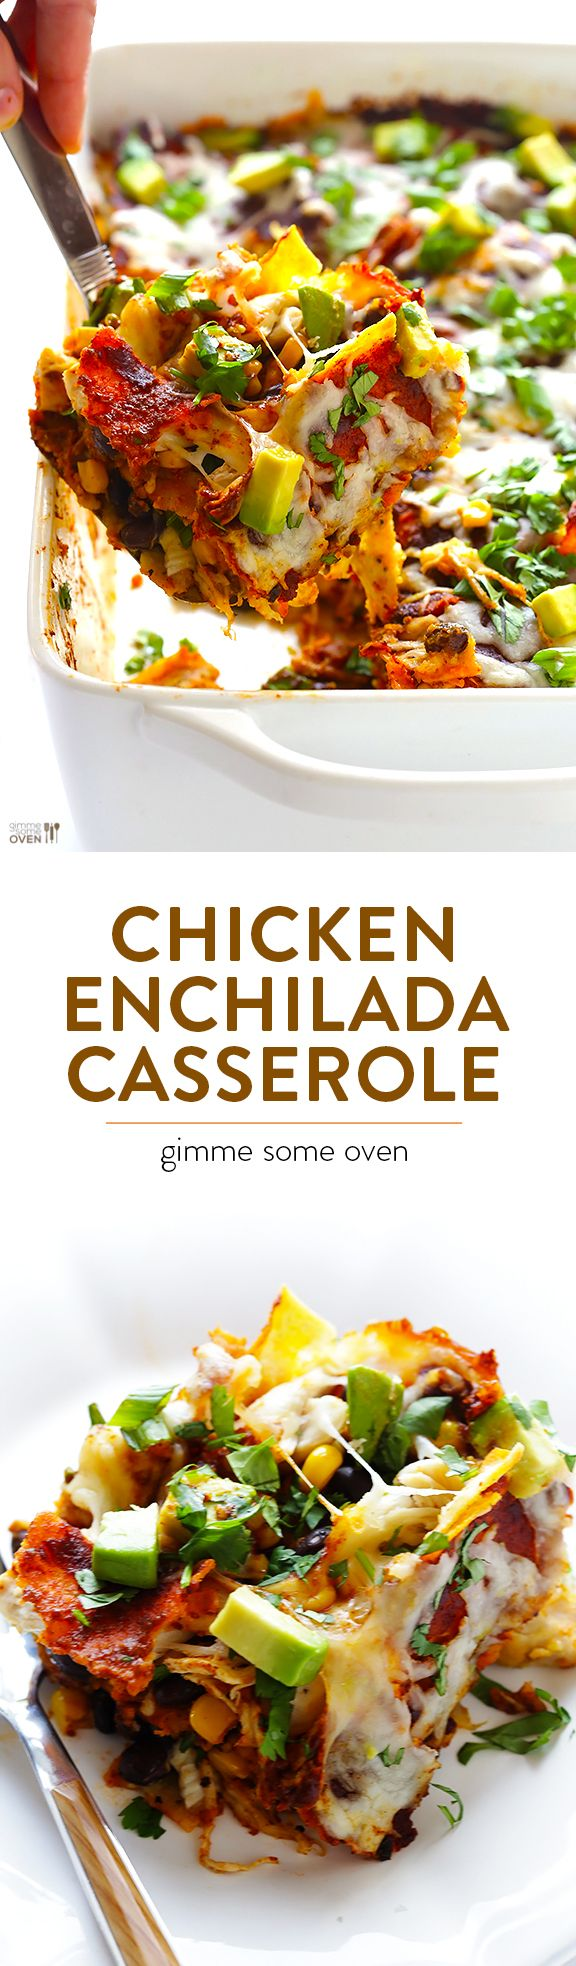 "Chicken Enchilada Casserole -- my favorite recipe for enchiladas that's made extra easy by being ""stacked"" into a casserole 